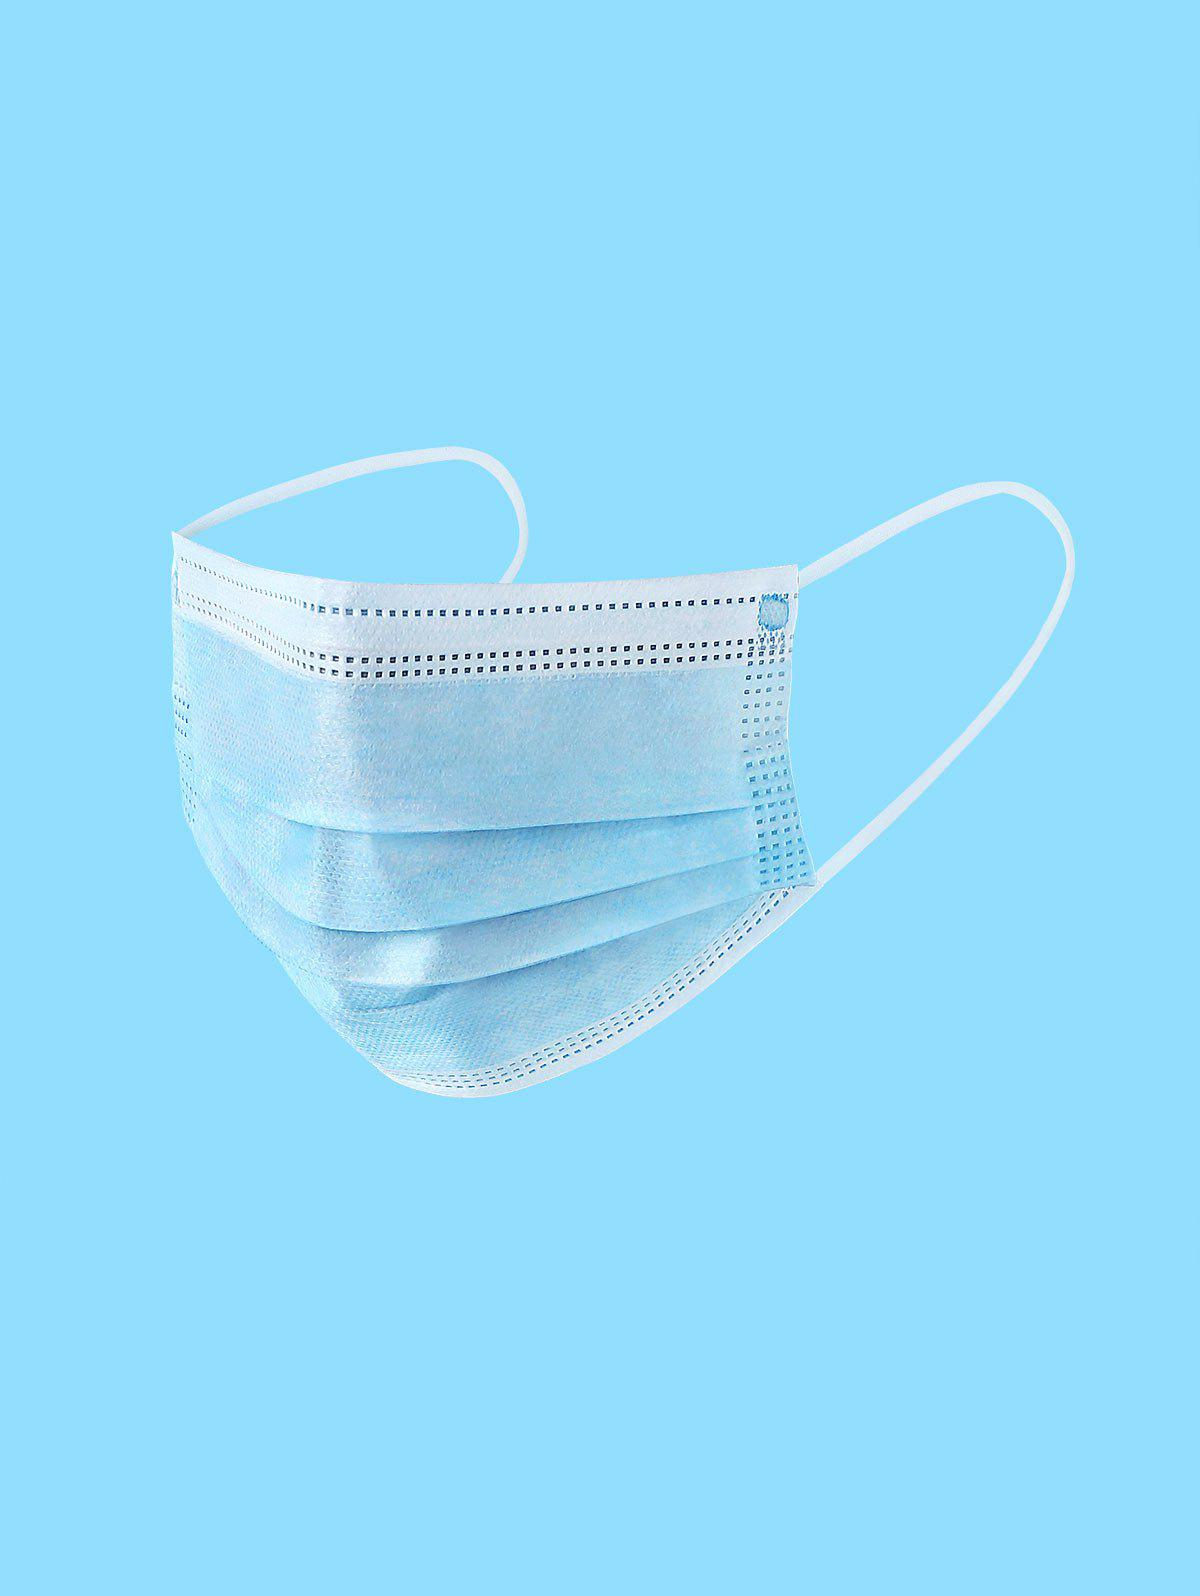 Shops Disposable Isolation Face Mask with FDA and CE Certification Anti-Dust Masks 50pcs